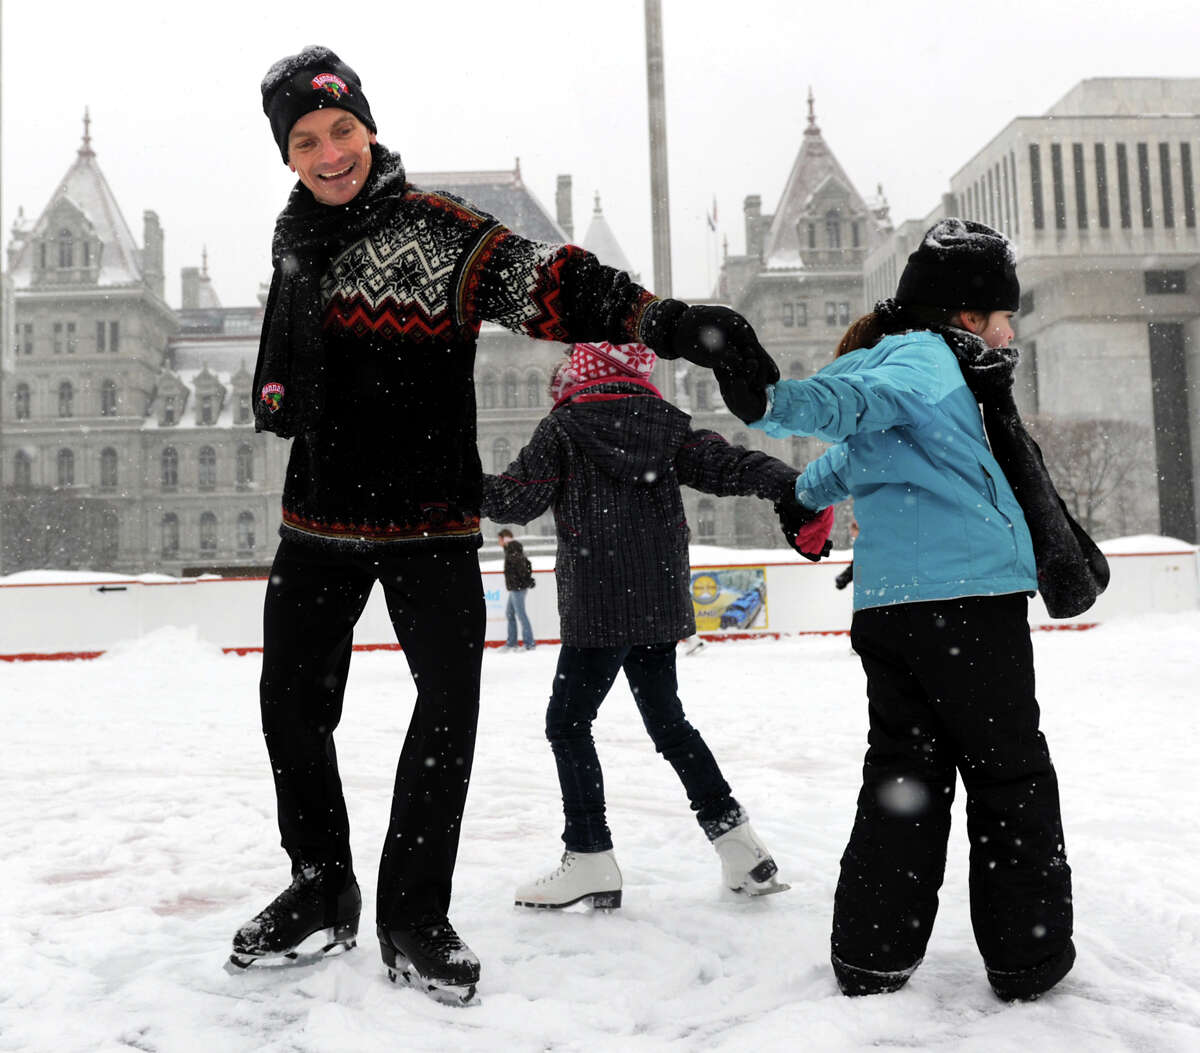 Paul Wylie, 1992 Olympic Silver Medalist, left, joins young fans in a friendship circle on the snowy ice rink on Saturday, Dec. 29, 2012, at the Empire State Plaza in Albany, N.Y. Joining Wylie are Kaileigh Tricarick, 8, of Waterford, right, and Maggie Partlow, 9, of Halfmoon. Wylie's visit was sponsored by Starlight Children's Foundation and Hannaford Supermarkets. (Cindy Schultz / Times Union)